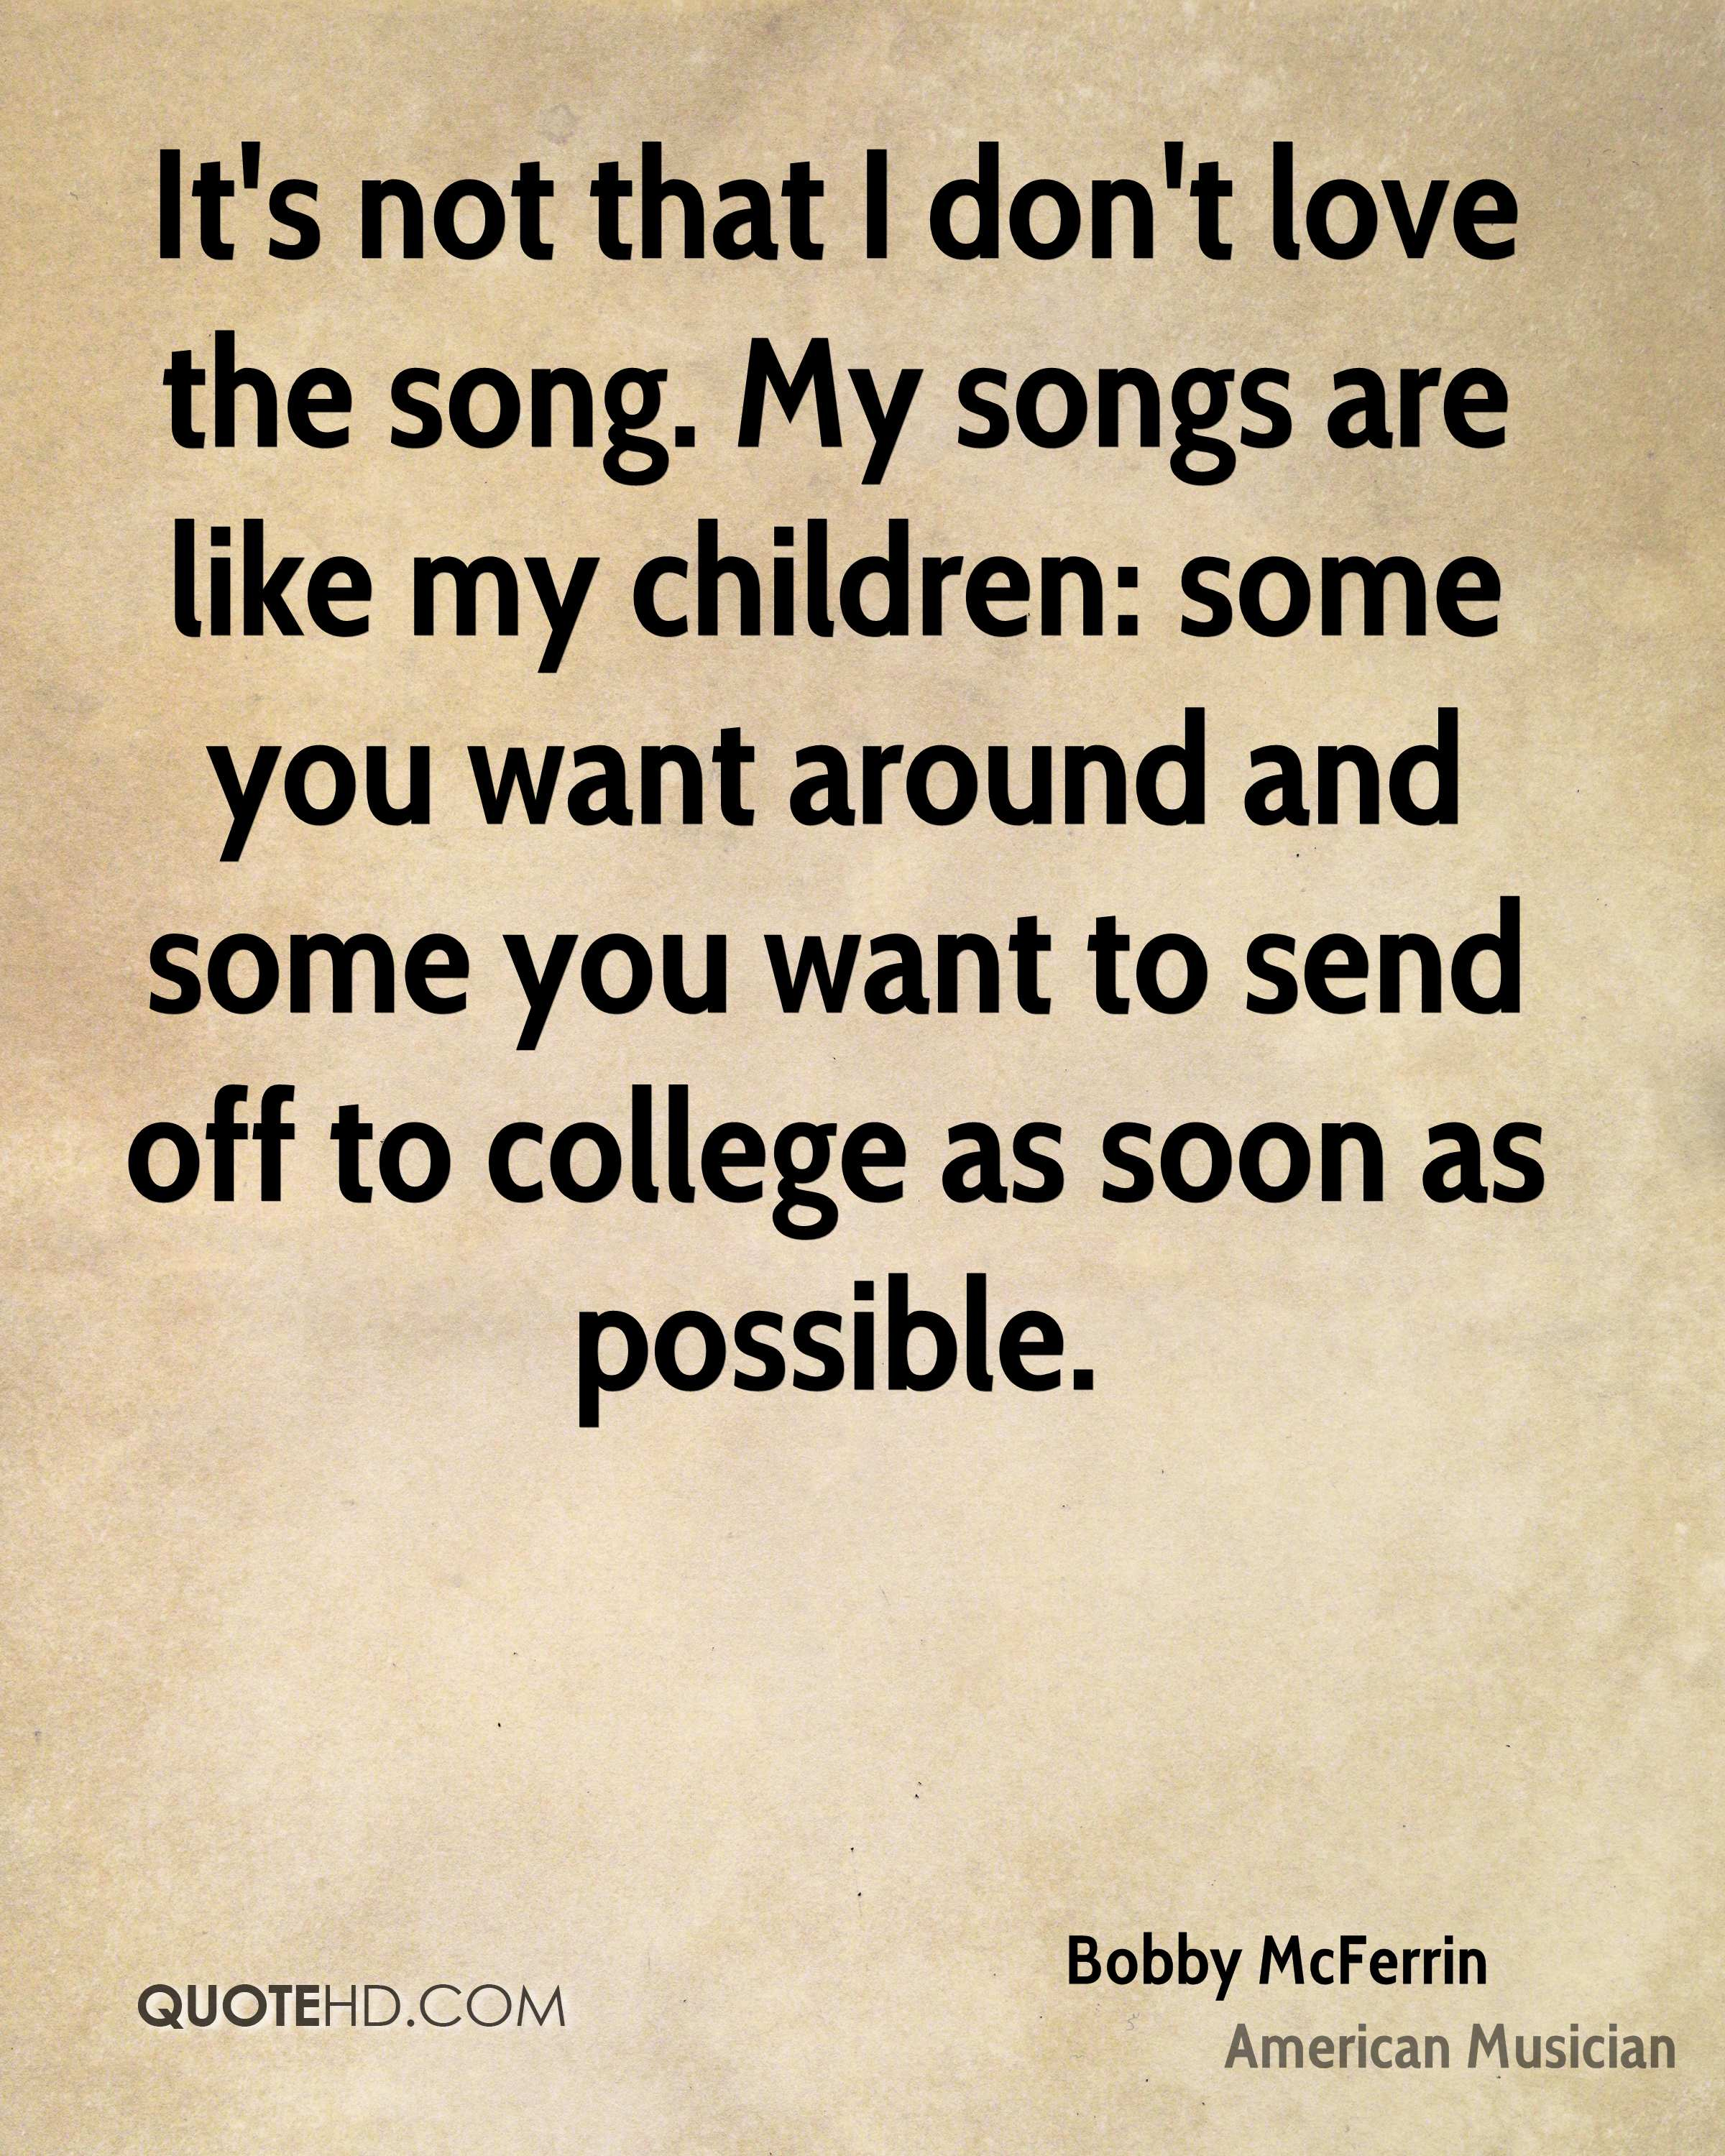 It's not that I don't love the song. My songs are like my children: some you want around and some you want to send off to college as soon as possible.